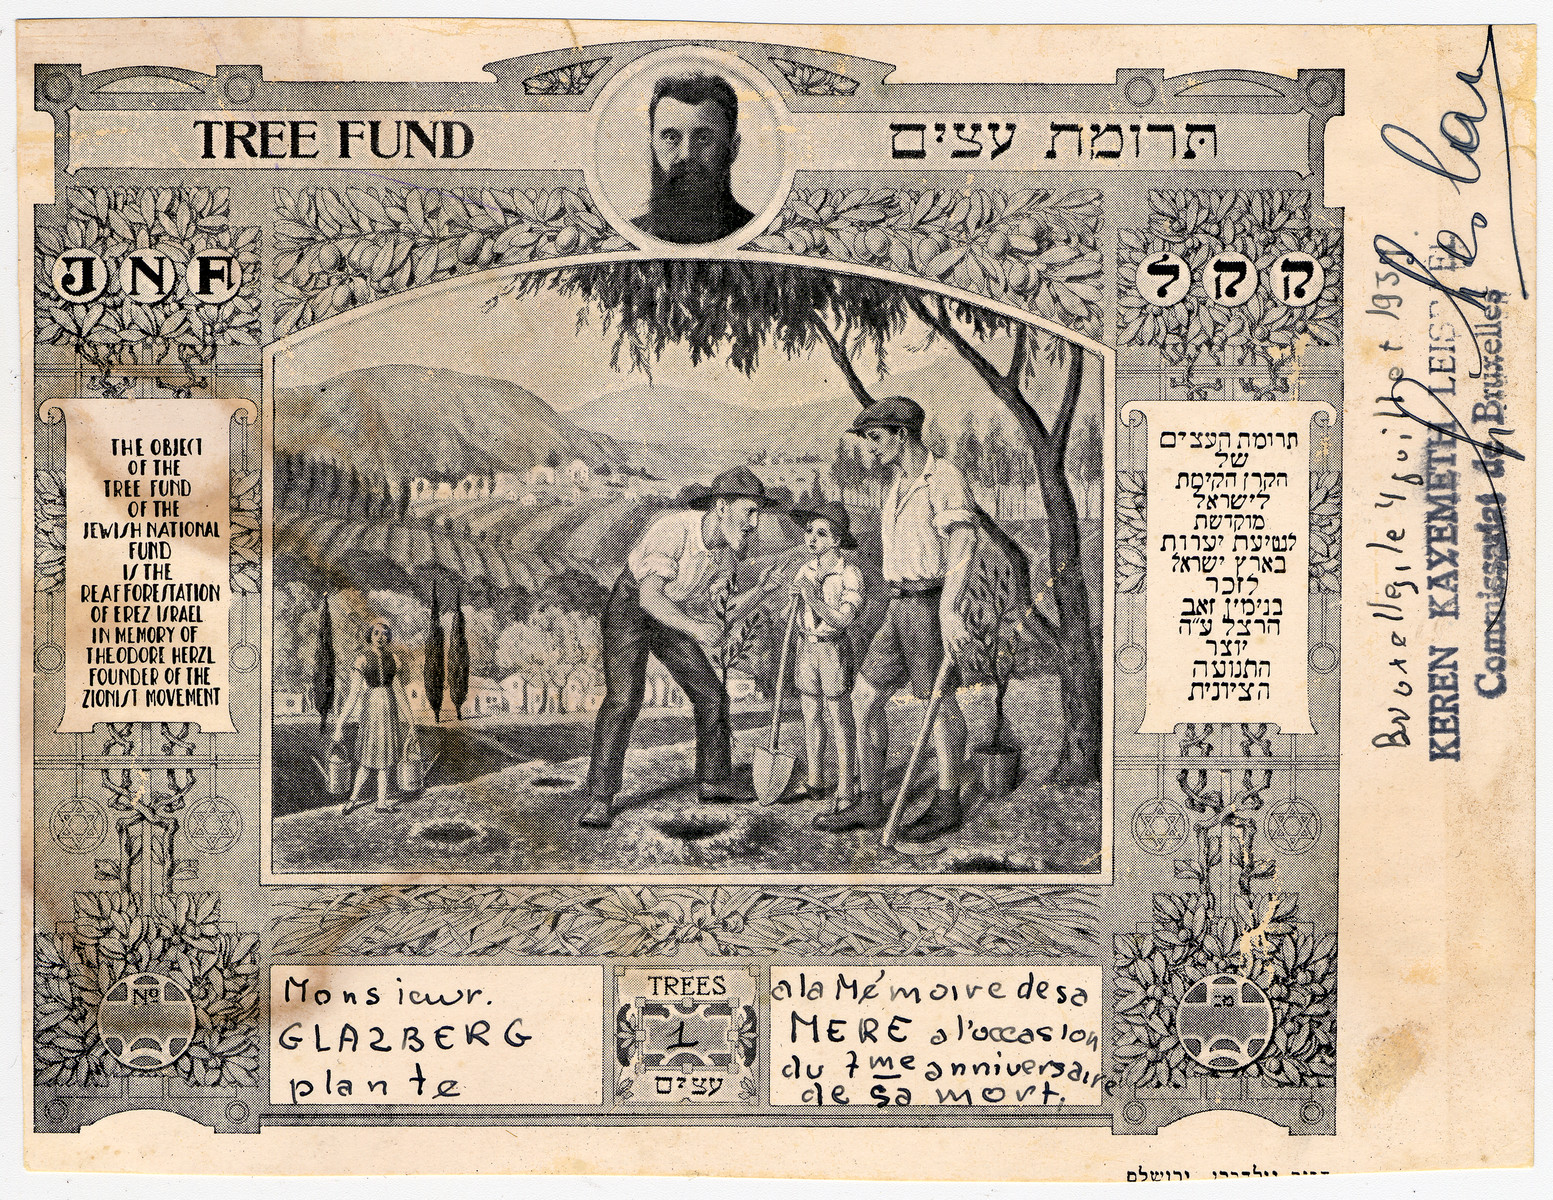 Jewish National Fund certificate testifying that Samuel Glasberg planted a tree in Palestine to commemorate the seventh anniversary of his mother's death.